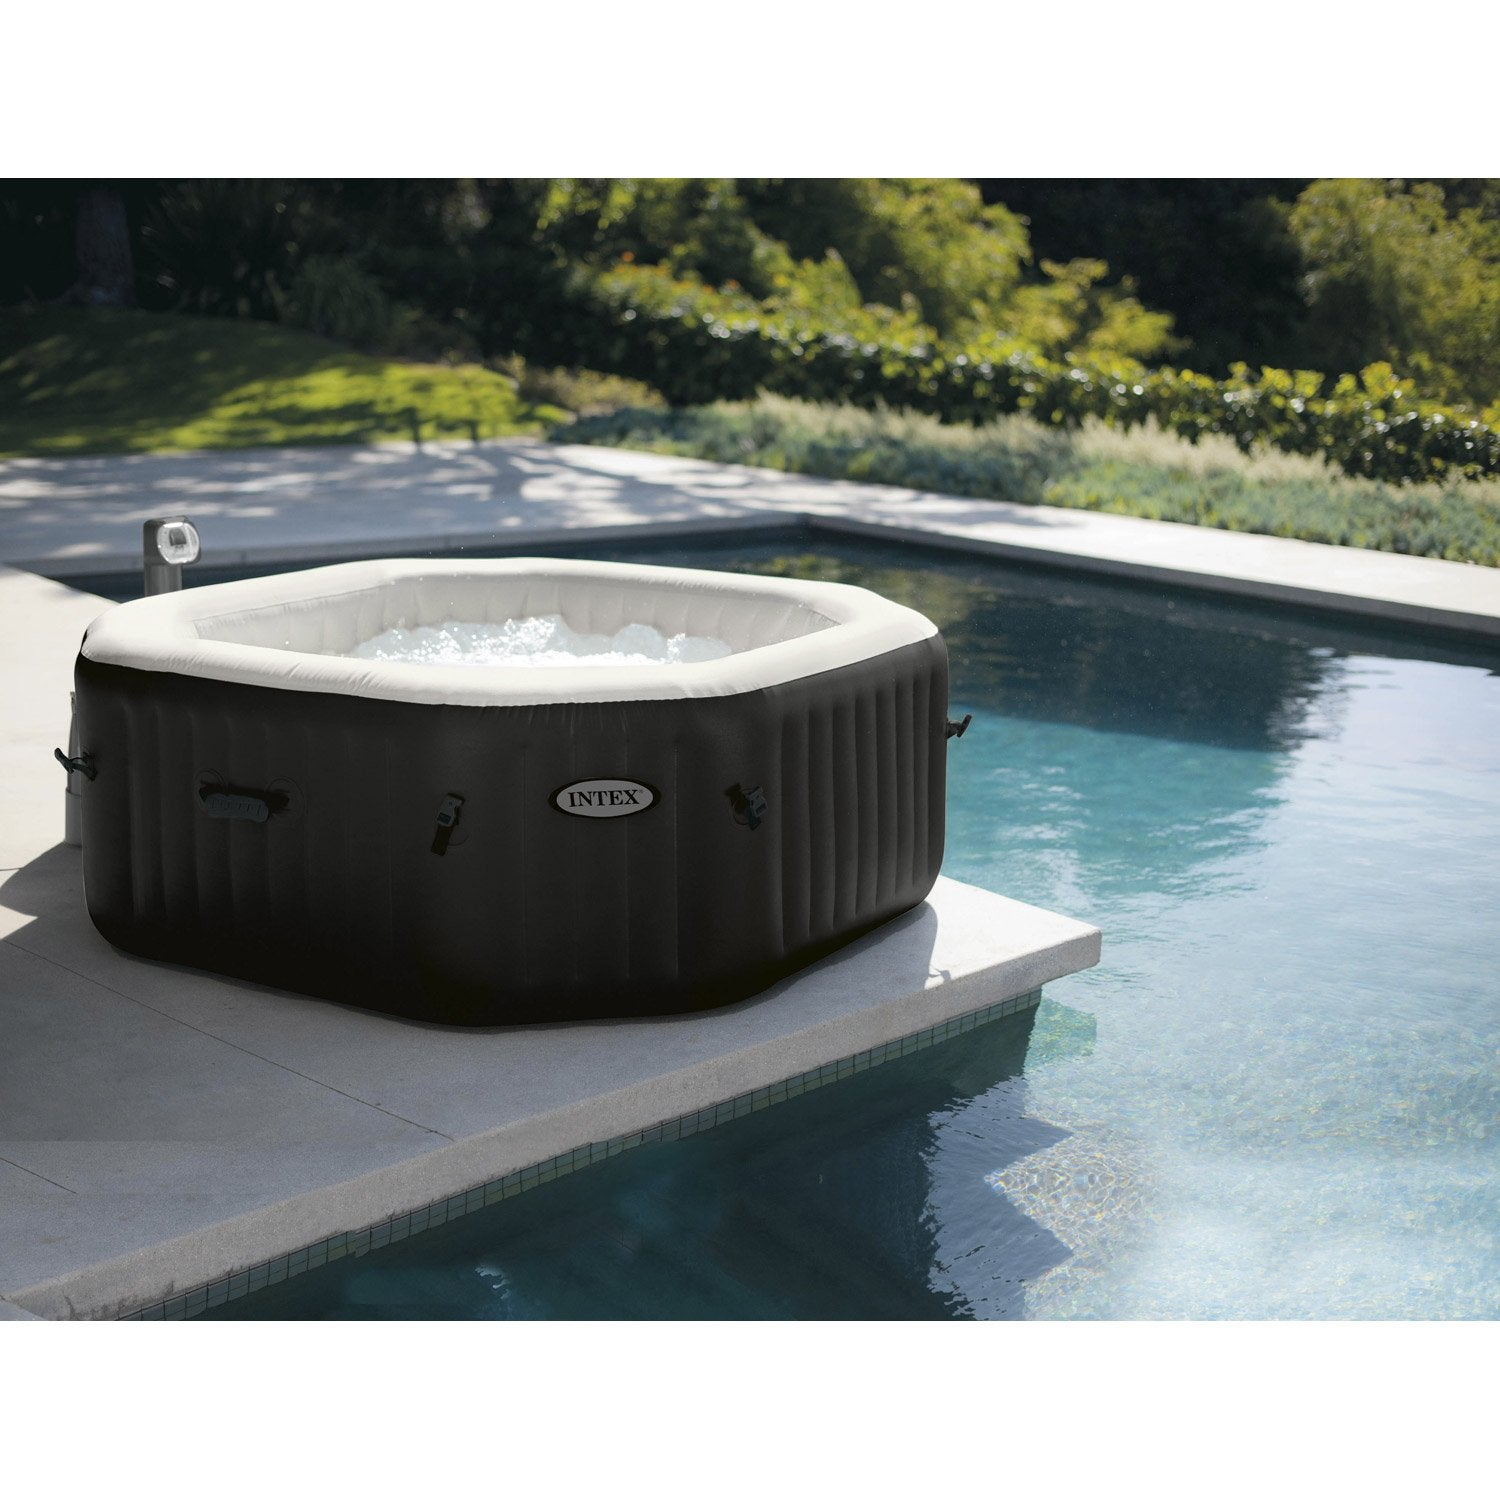 Spa gonflable intex purespa bulles octogonale 6 places - Jacuzzi exterieur leroy merlin ...